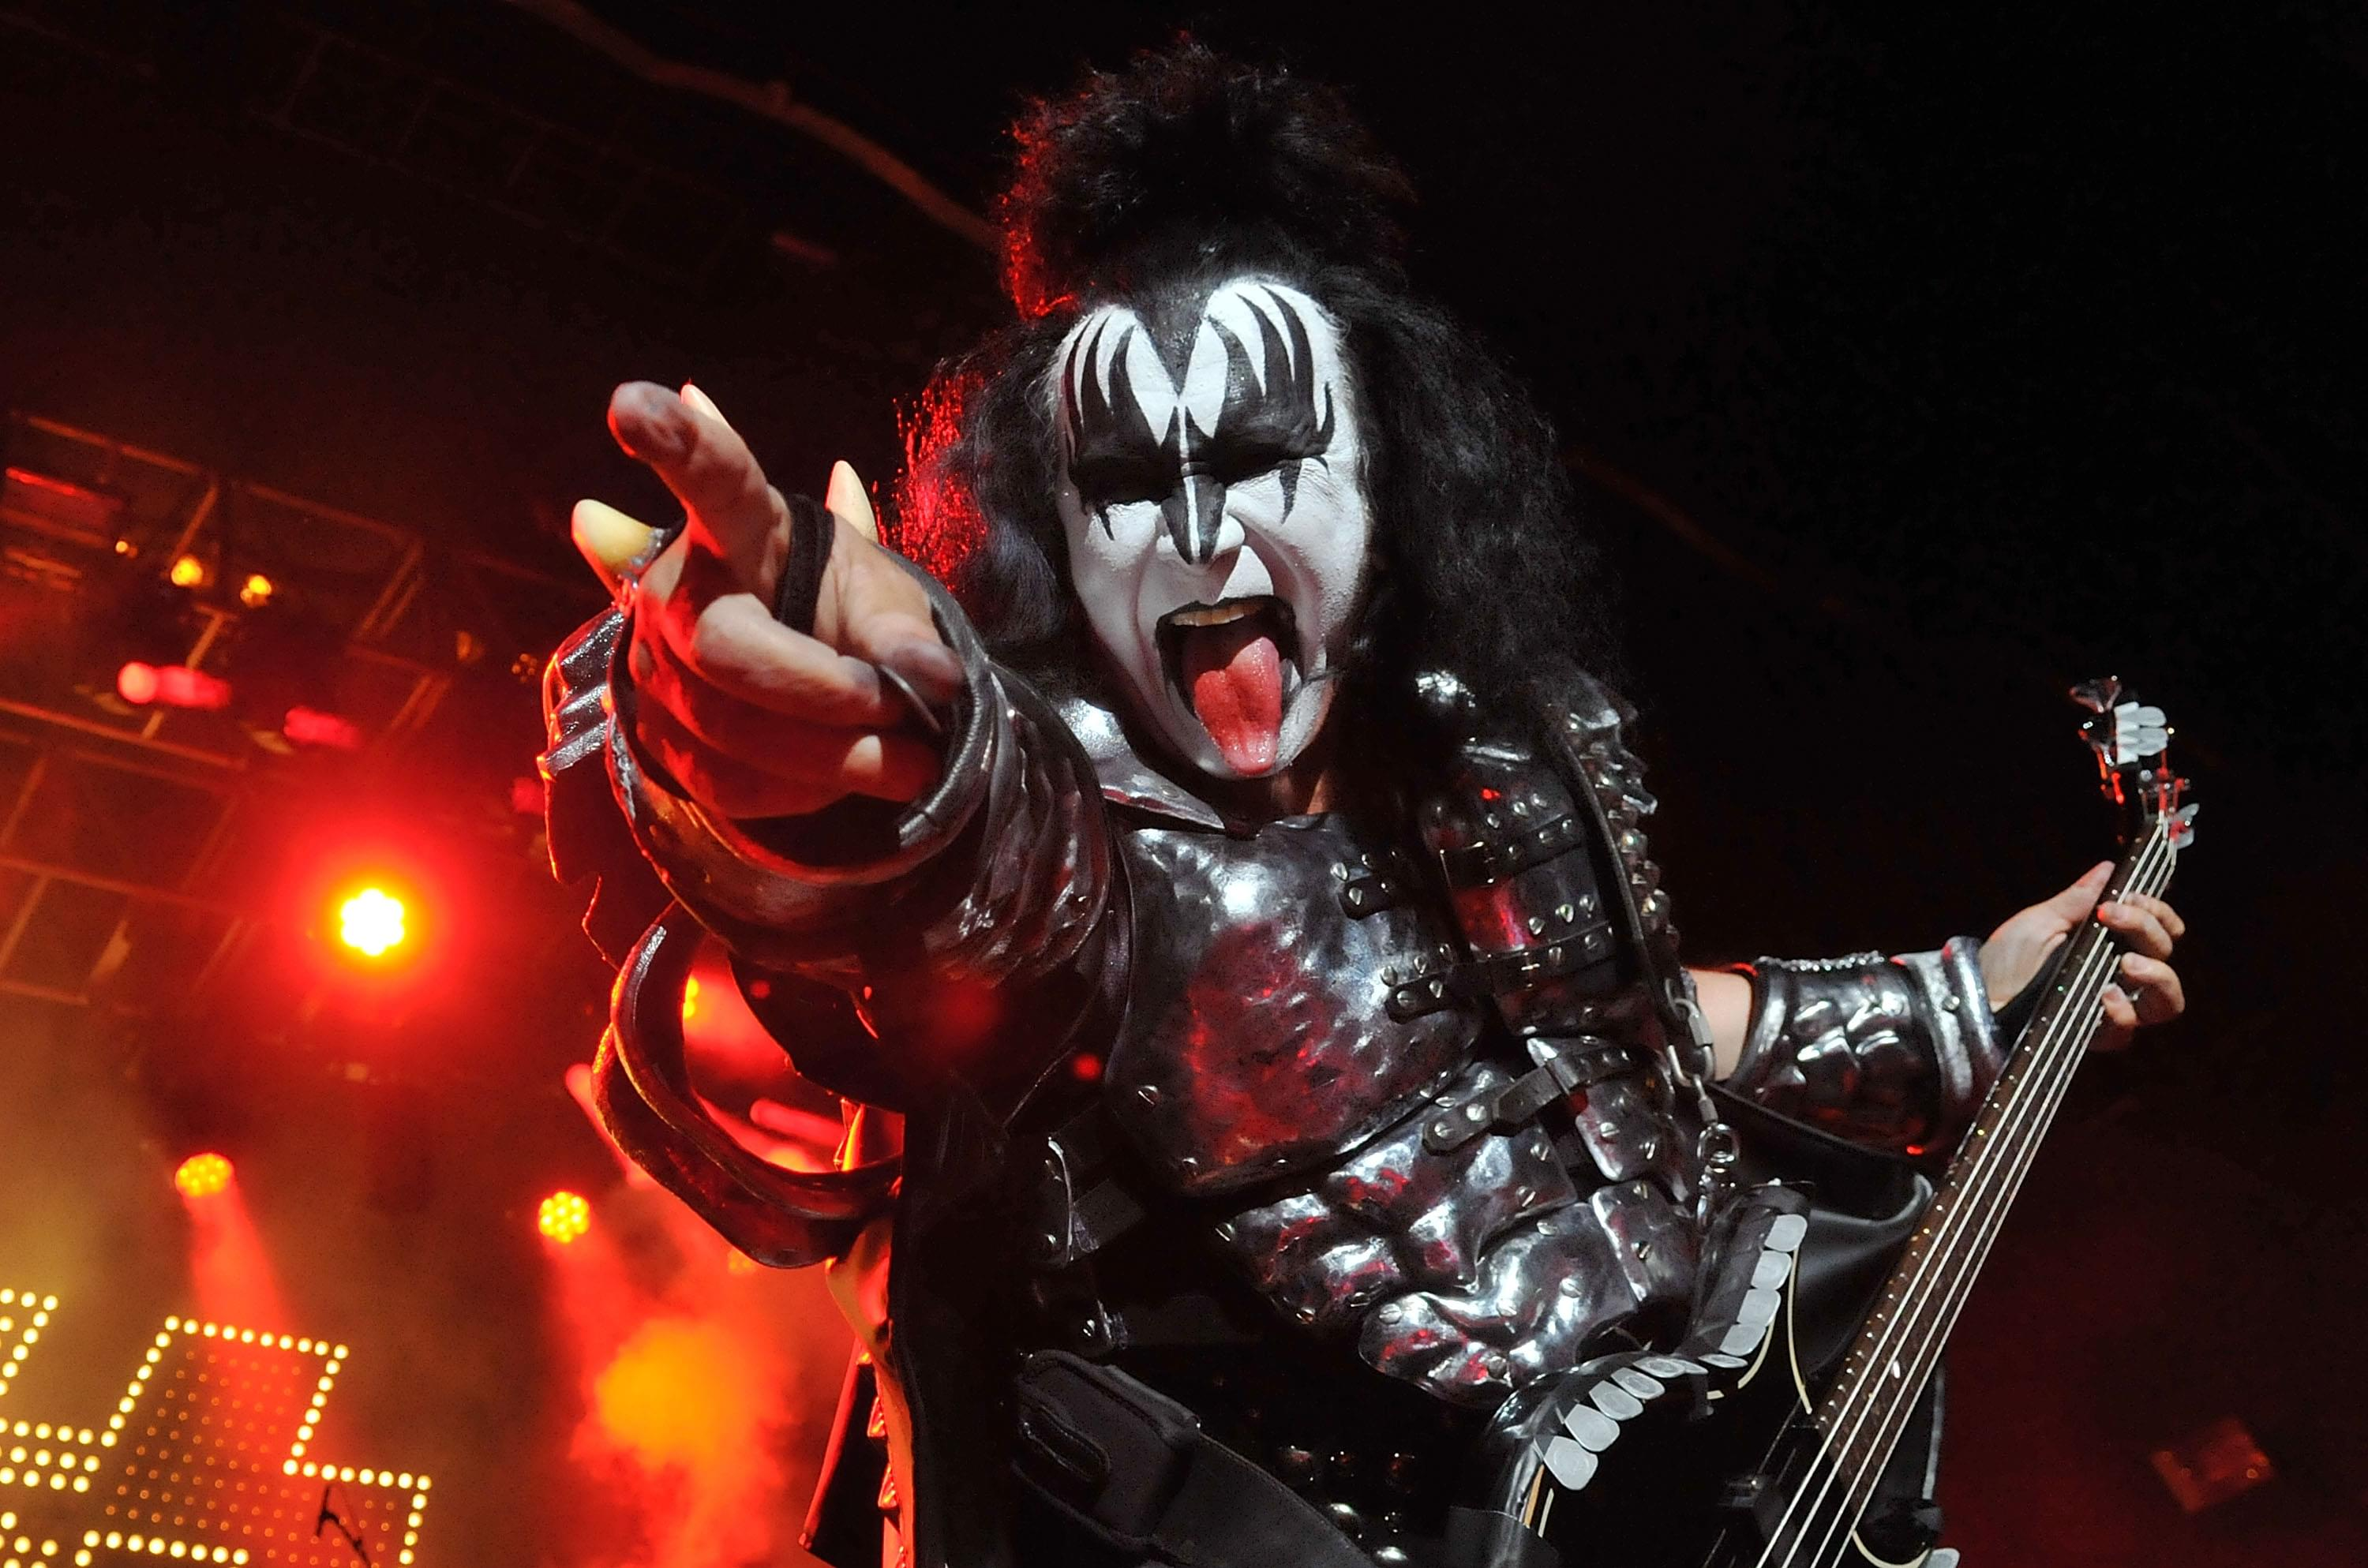 20 Years Ago, Gene Simmons Threatened To Blow Up A Hotel…Over Poor Service?